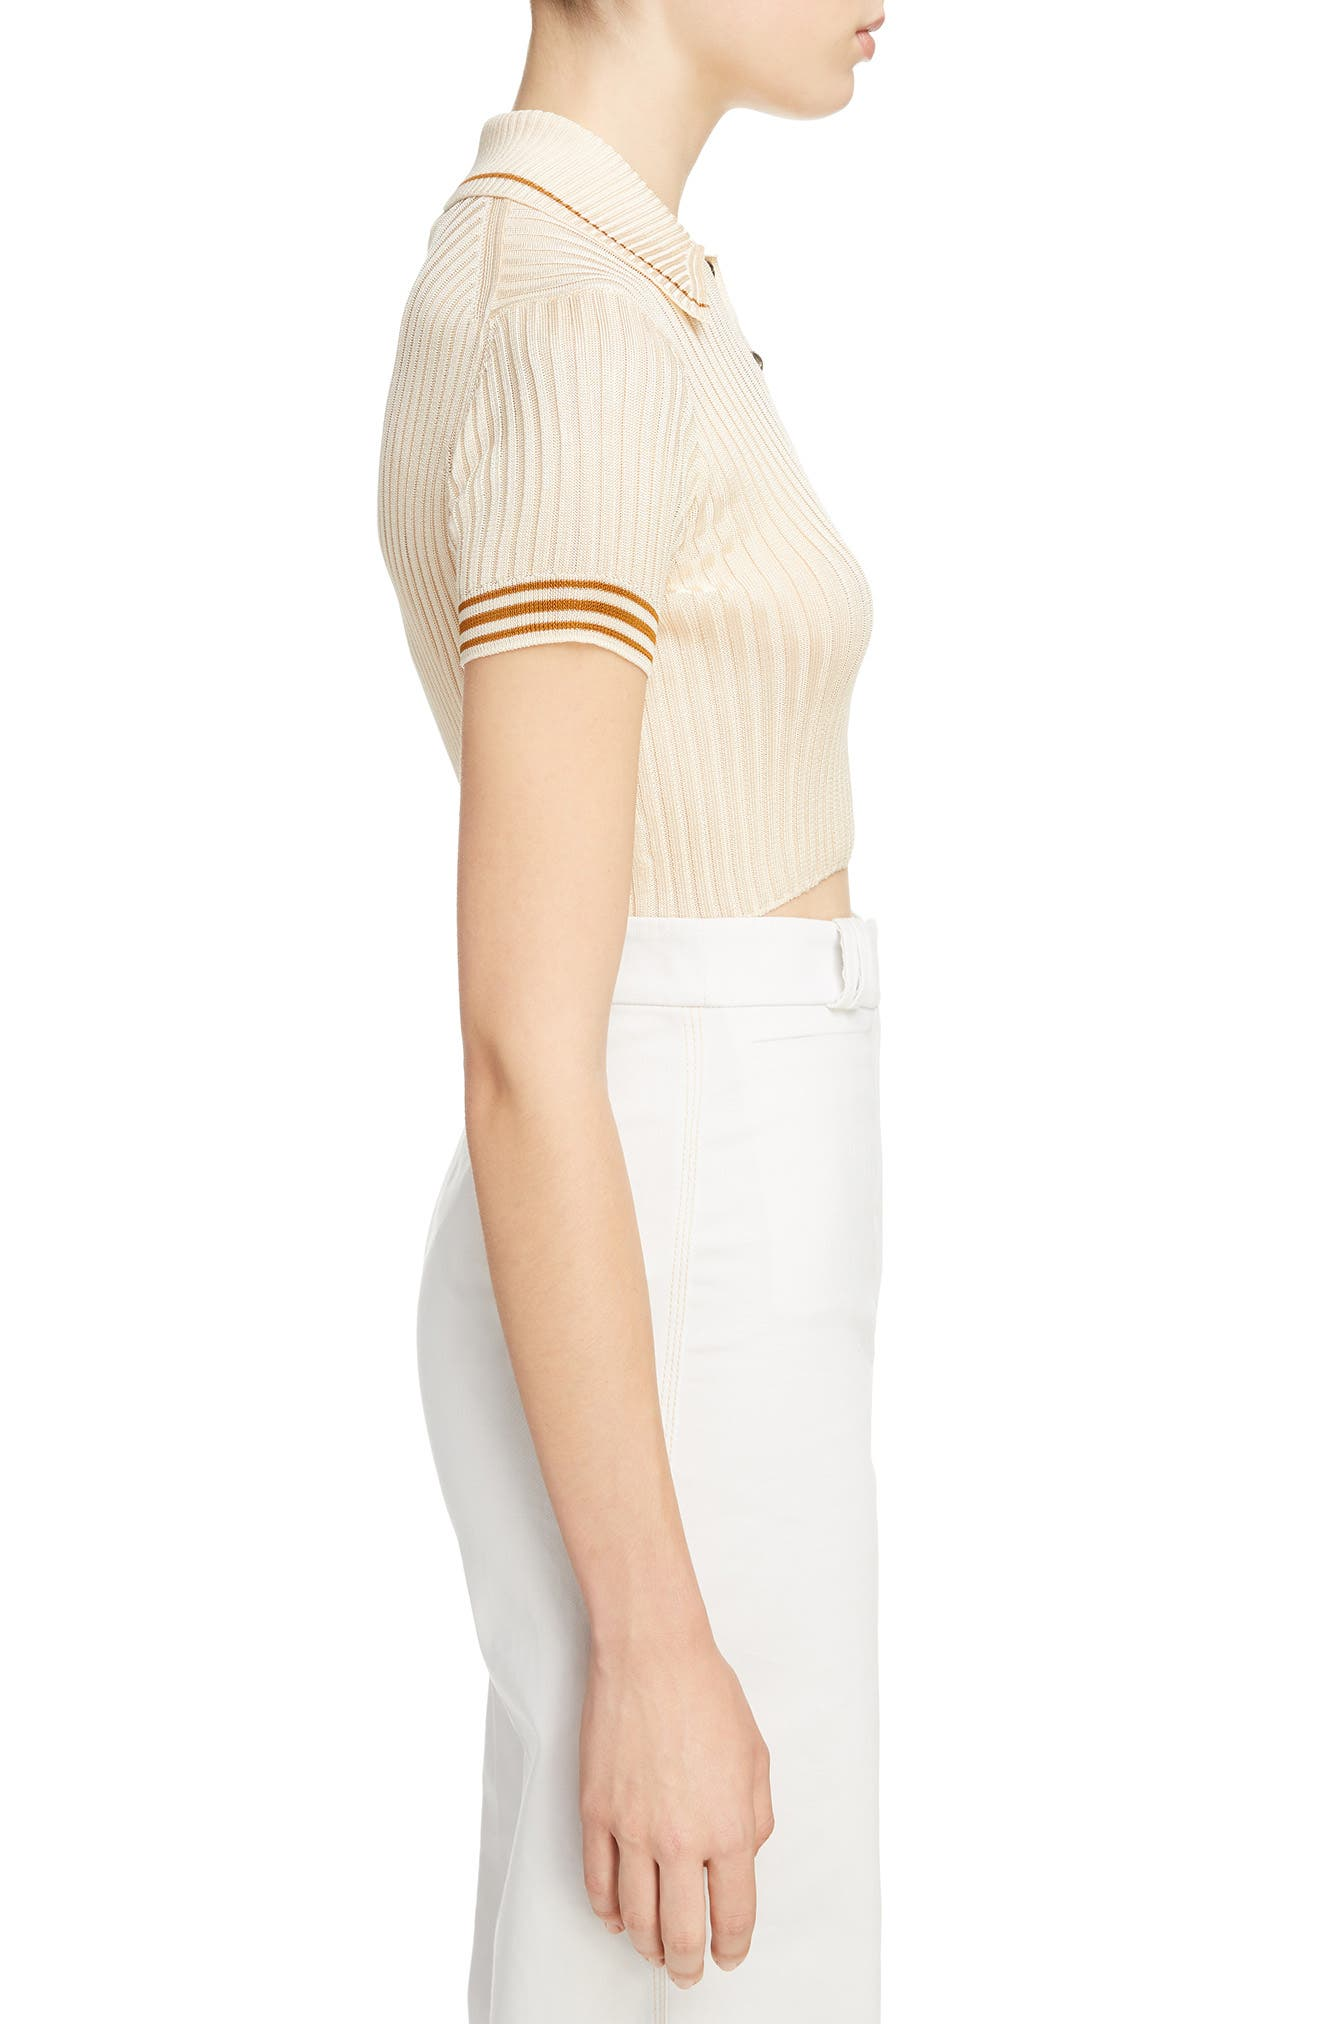 Shanita Lingerie Crop Polo Sweater,                             Alternate thumbnail 3, color,                             Ivory White/ Tobacco Stripe